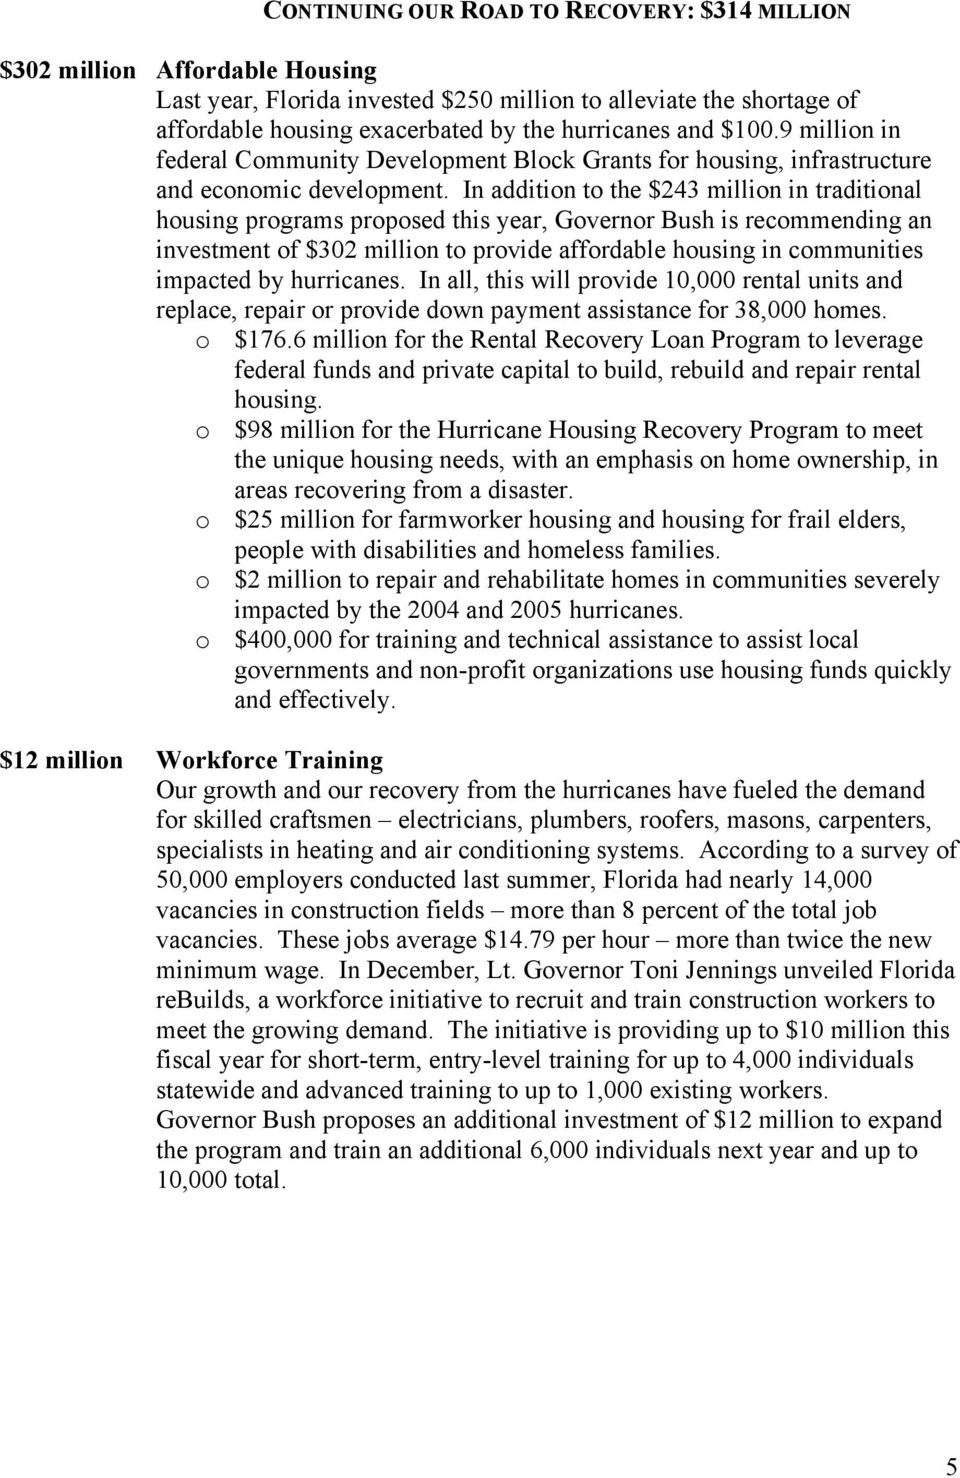 In addition to the $243 million in traditional housing programs proposed this year, Governor Bush is recommending an investment of $302 million to provide affordable housing in communities impacted